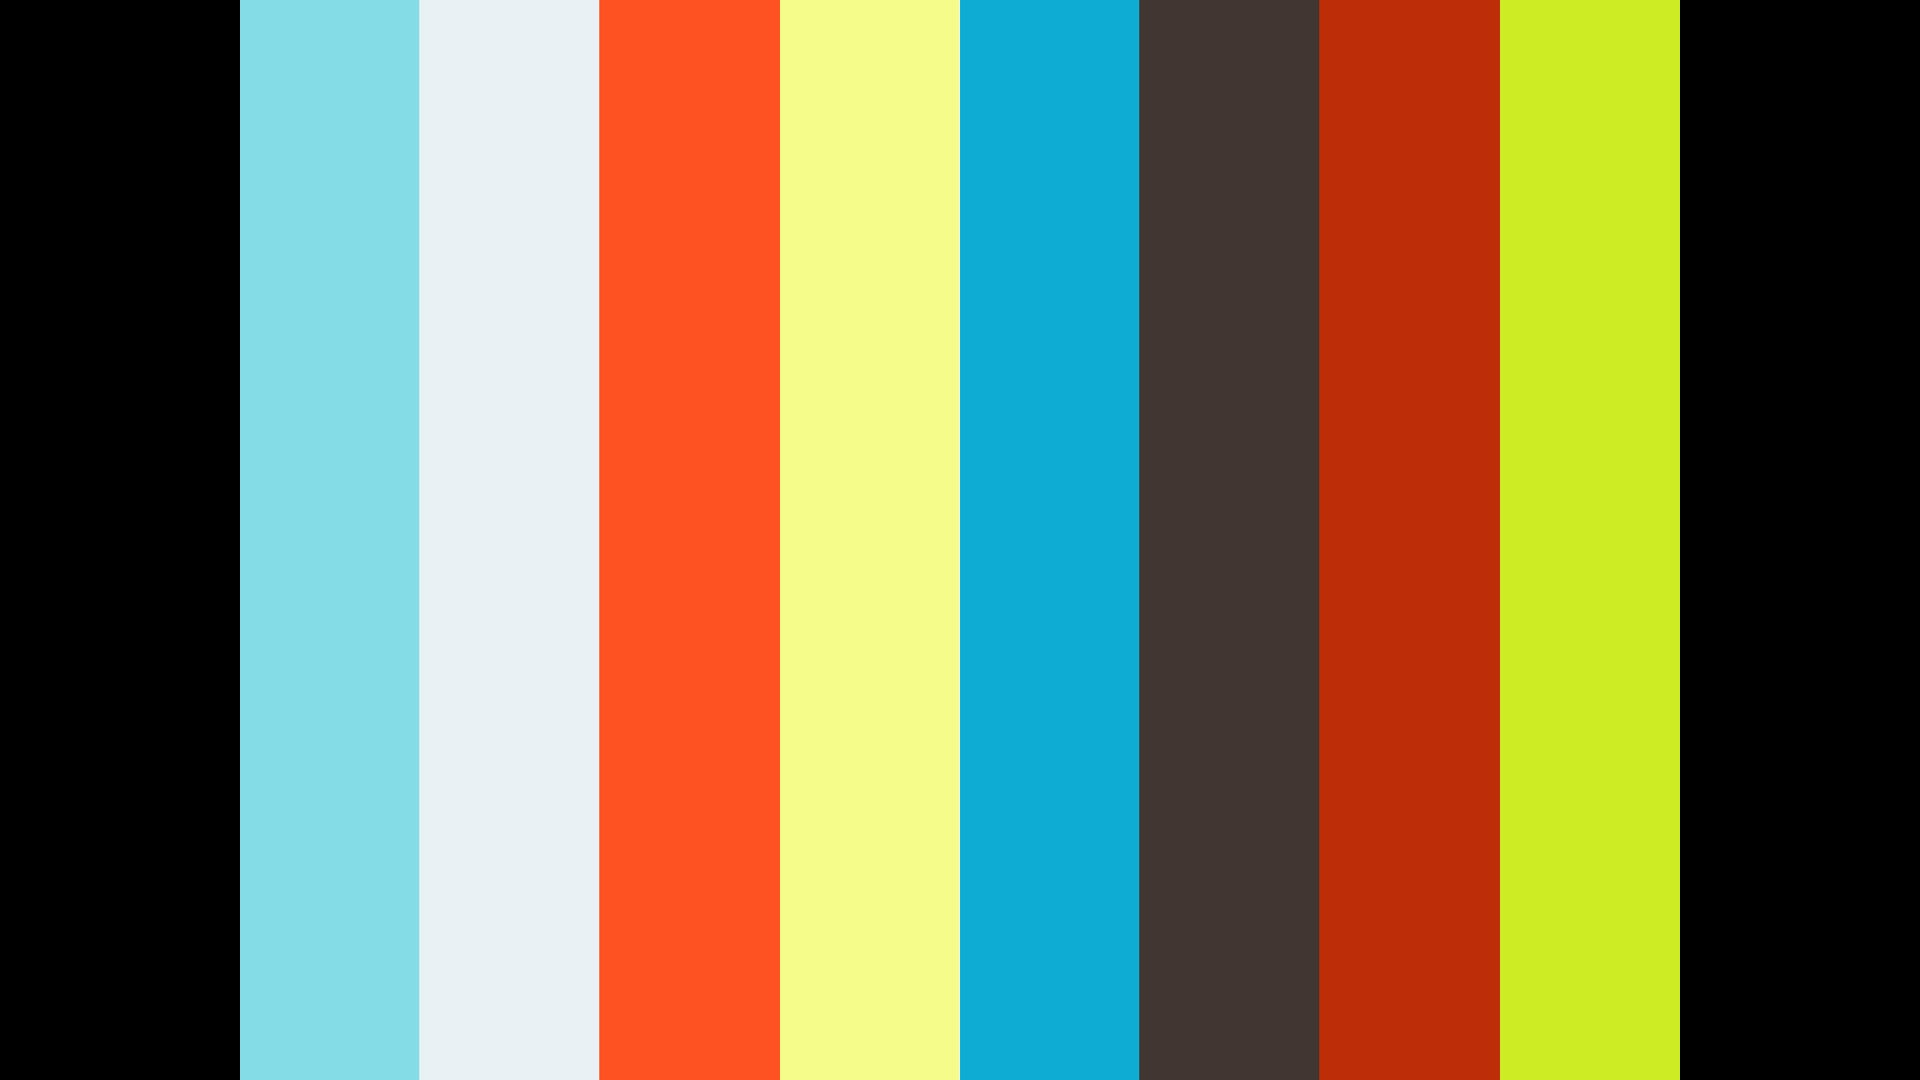 CitiesForLife